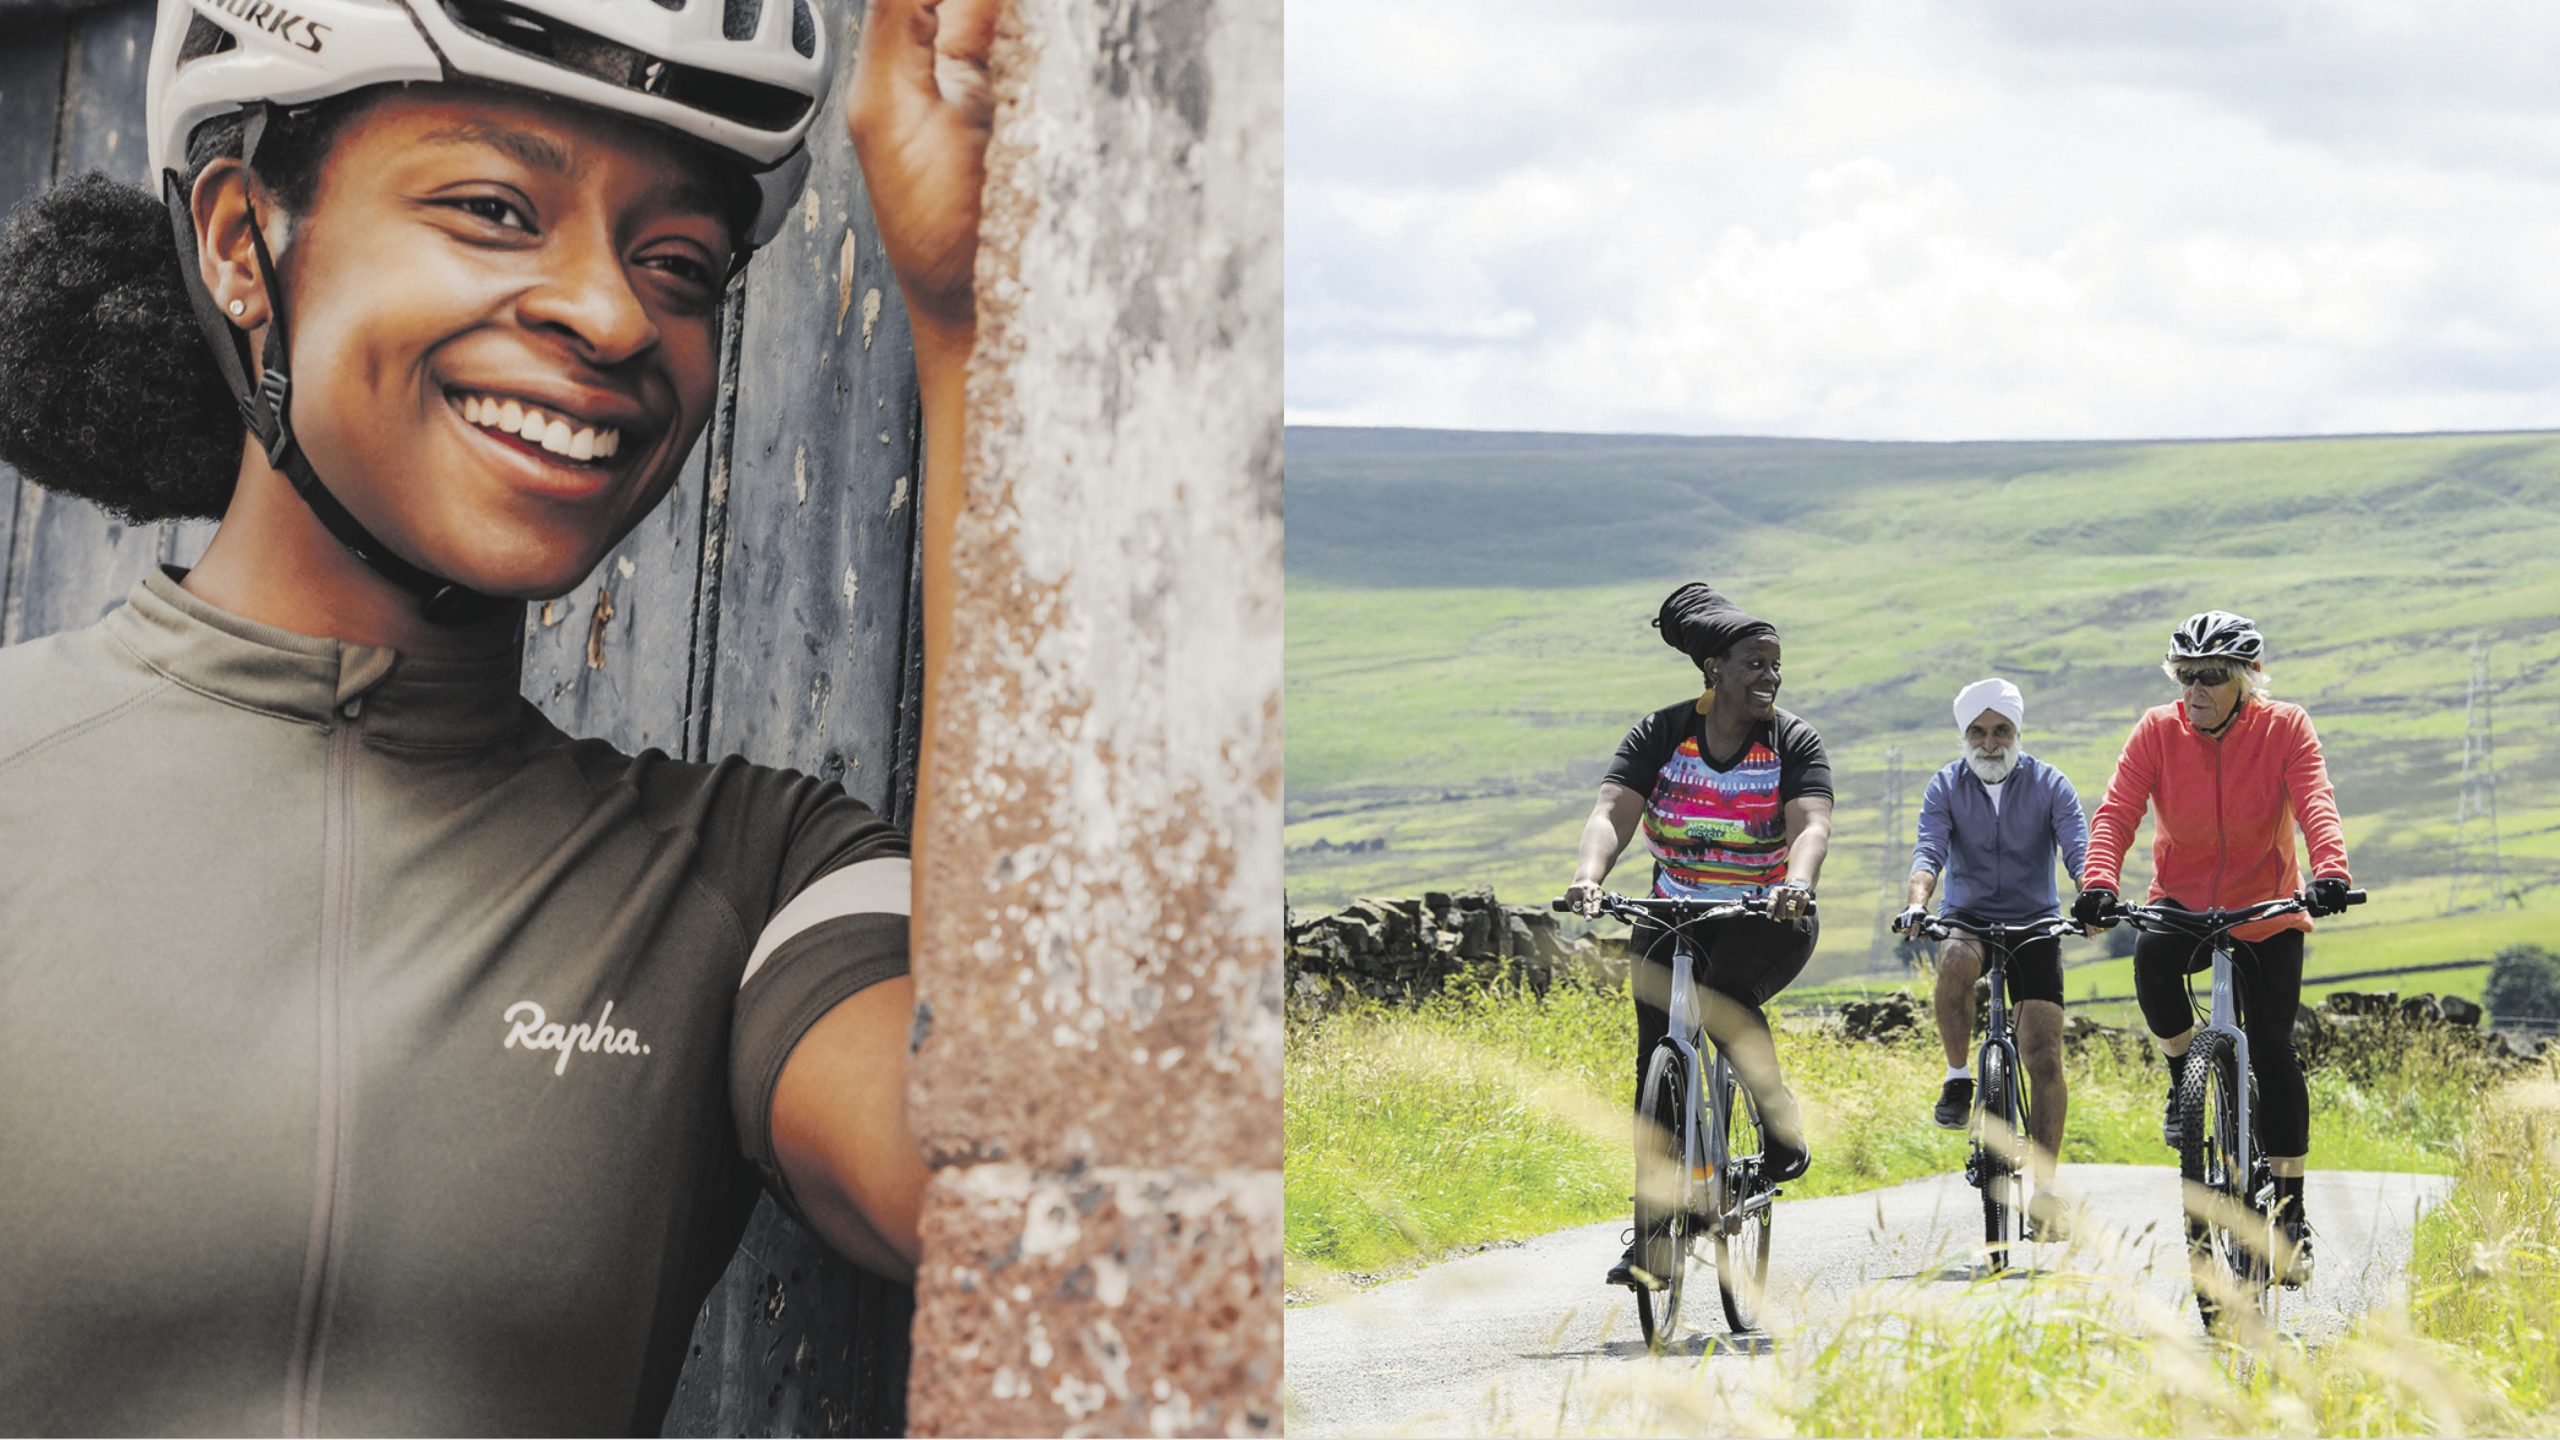 Win cycling kit and get ready for Bike Week Worth £100!